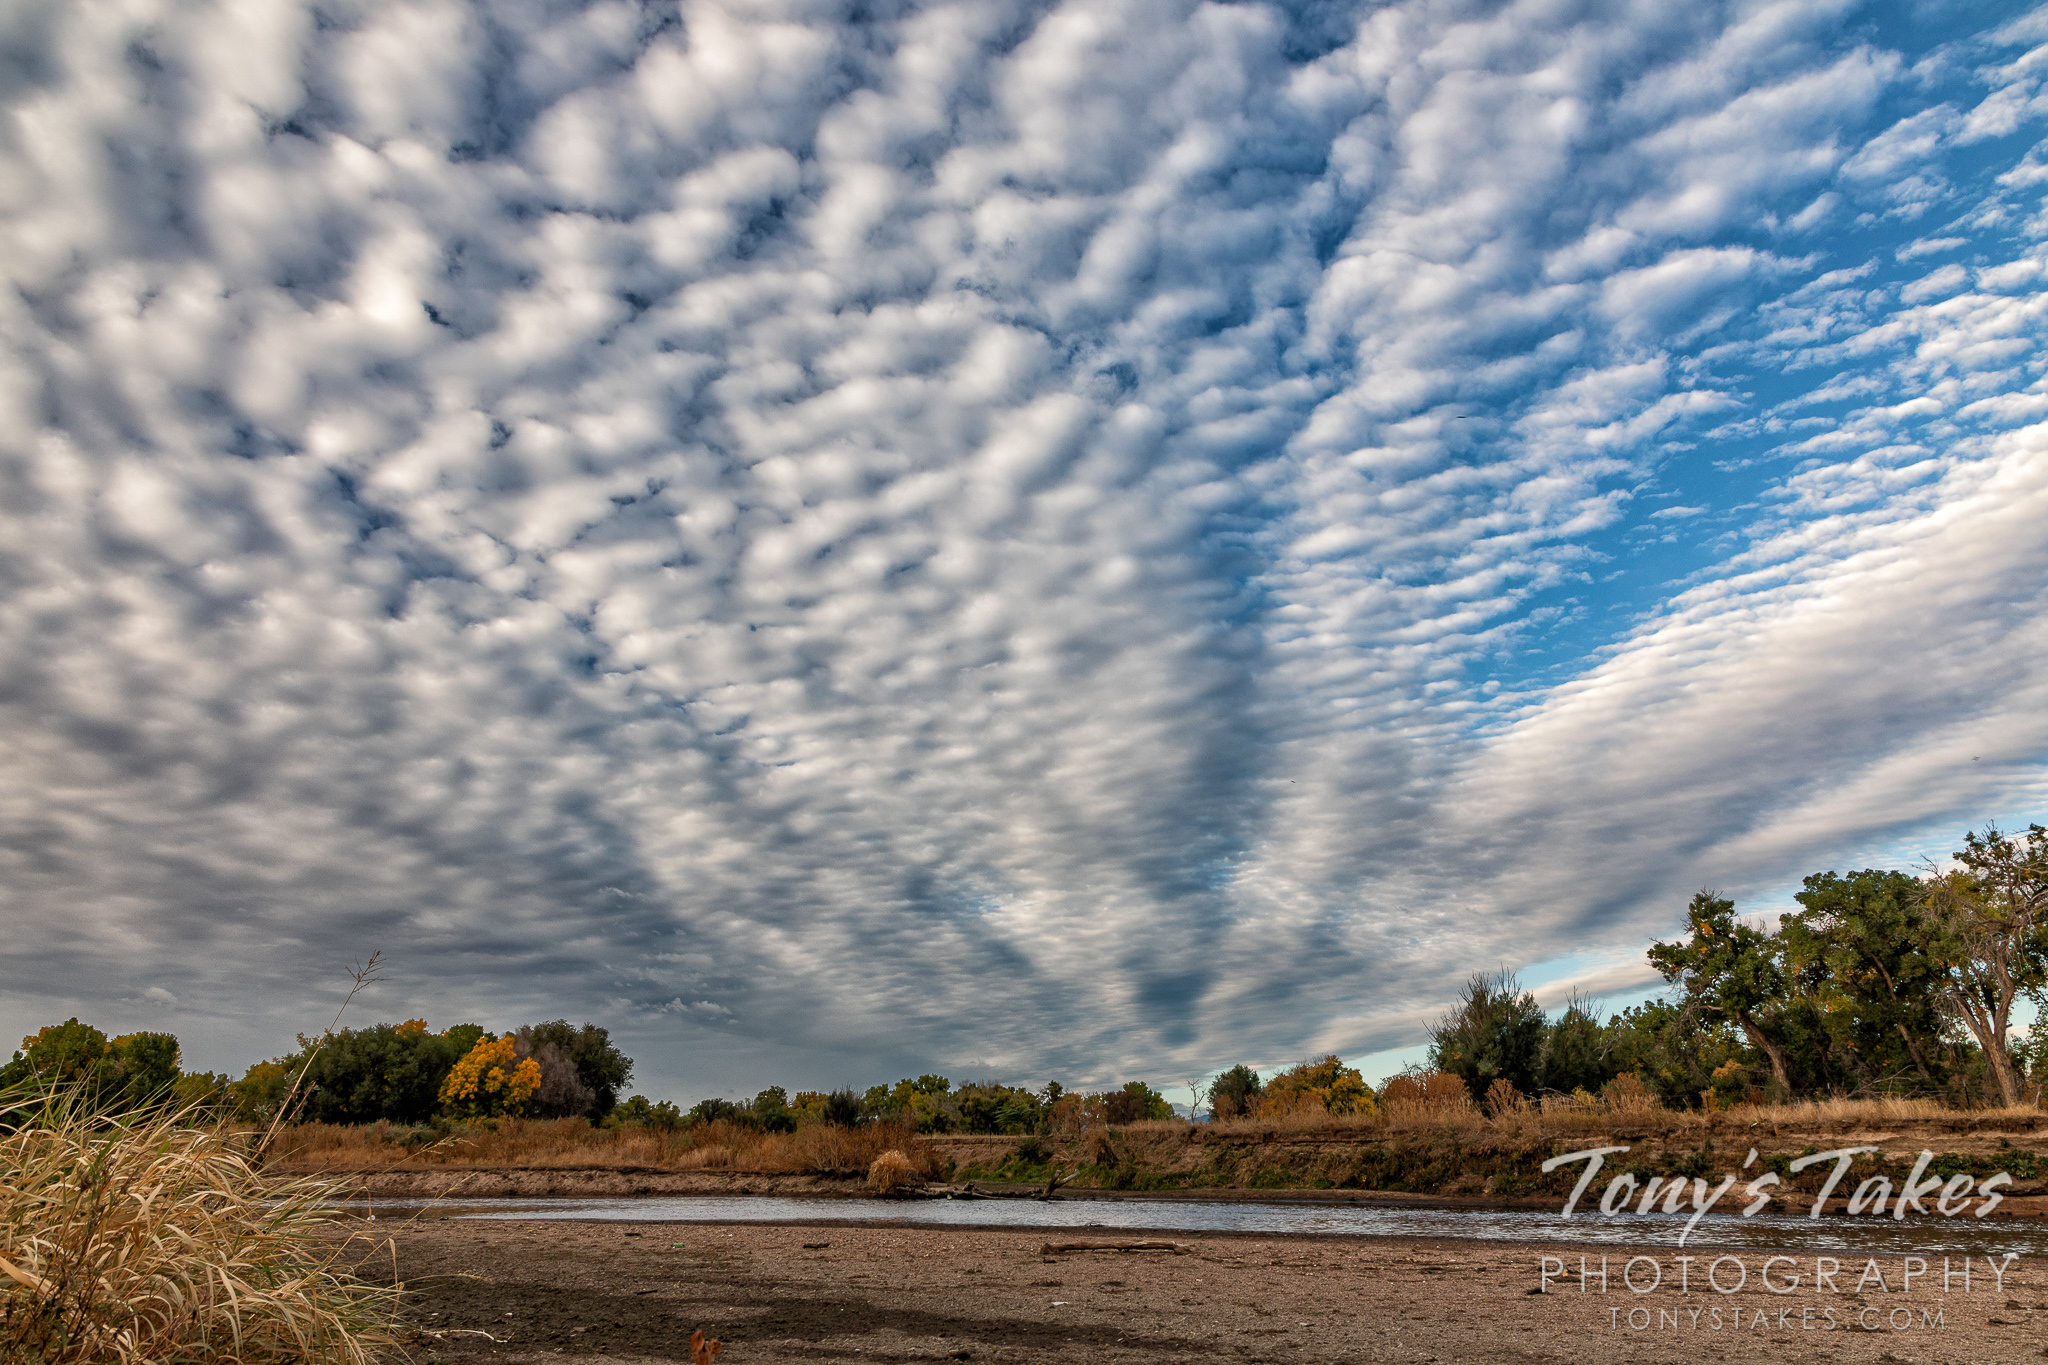 Cool clouds along the river